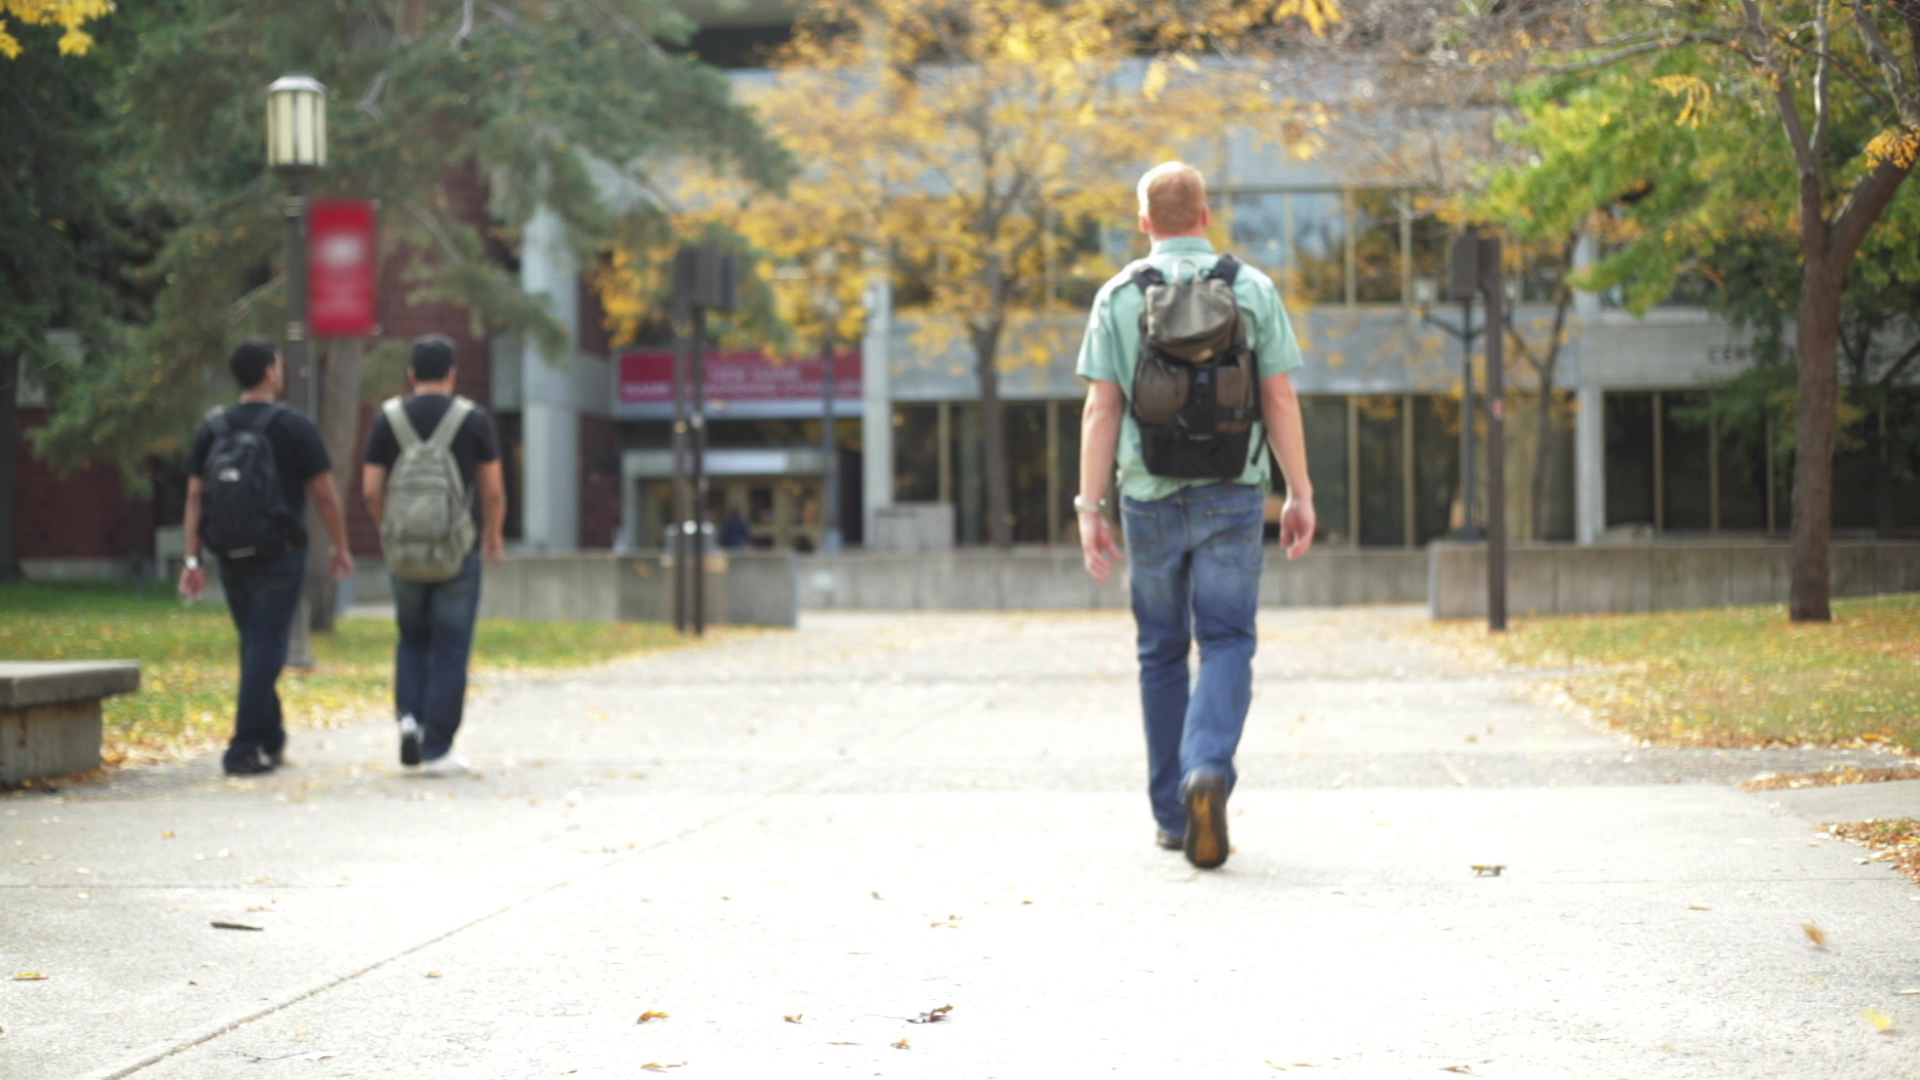 Students walking on campus sidewalk